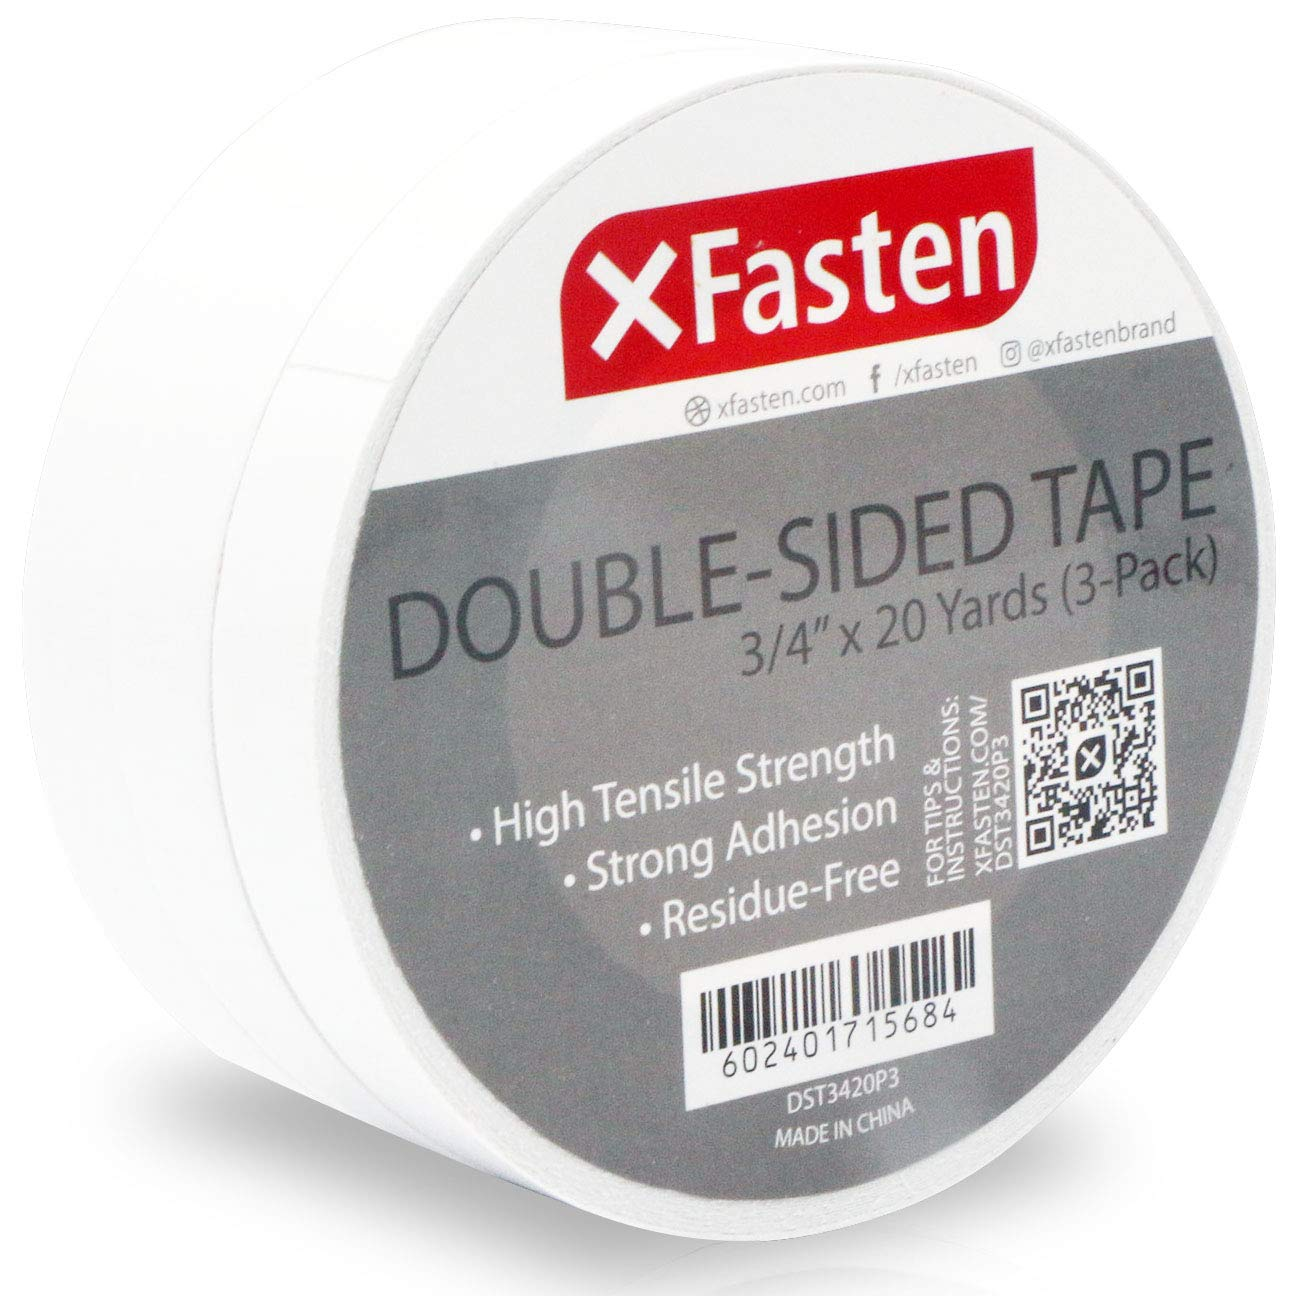 XFasten Double Sided Tape, Removable, 3/4-Inch by 20-Yards, Pack of 3 by XFasten (Image #1)